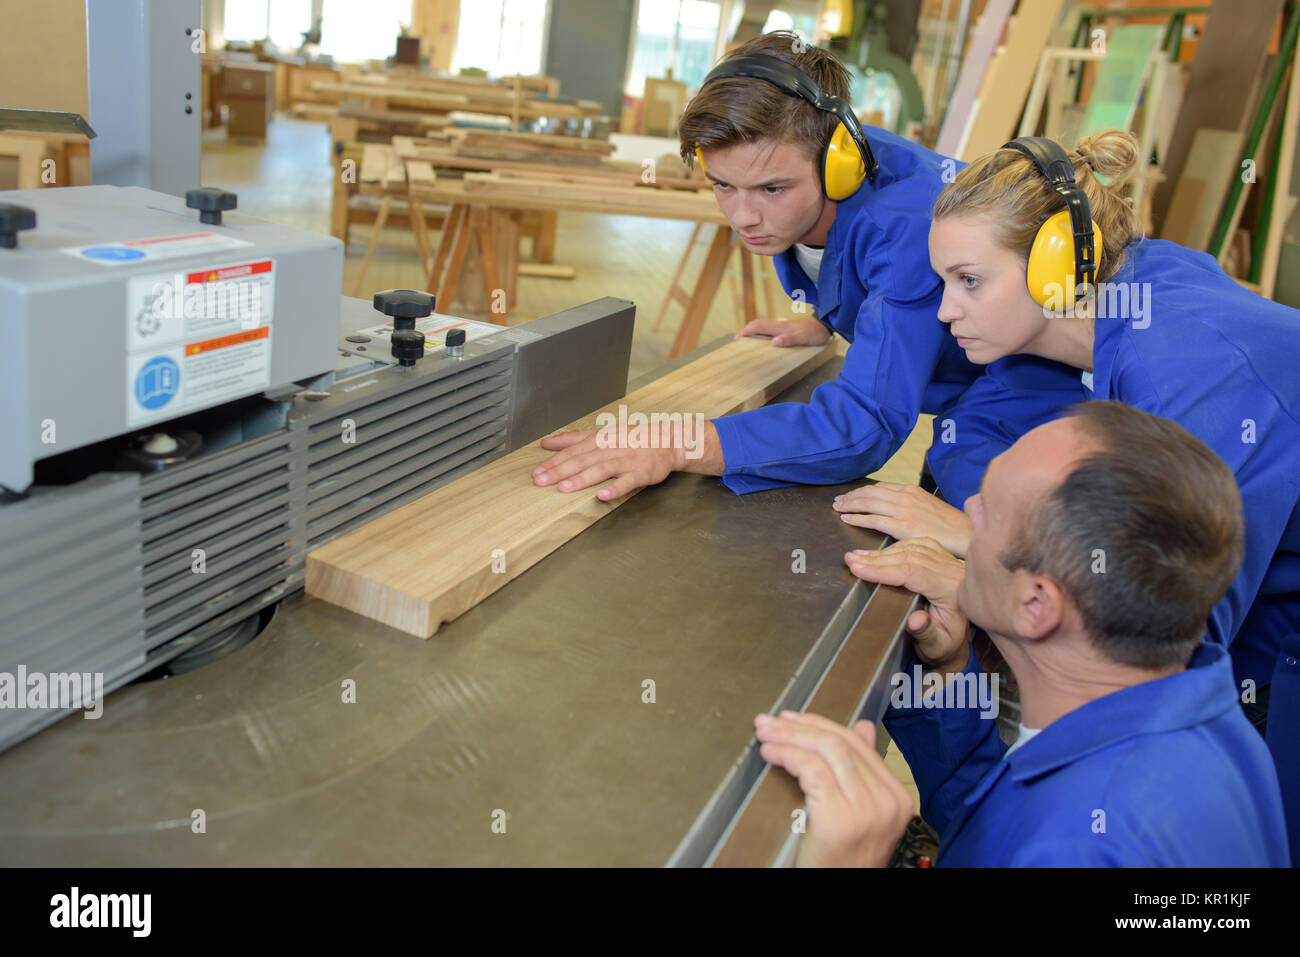 using a jointer - Stock Image